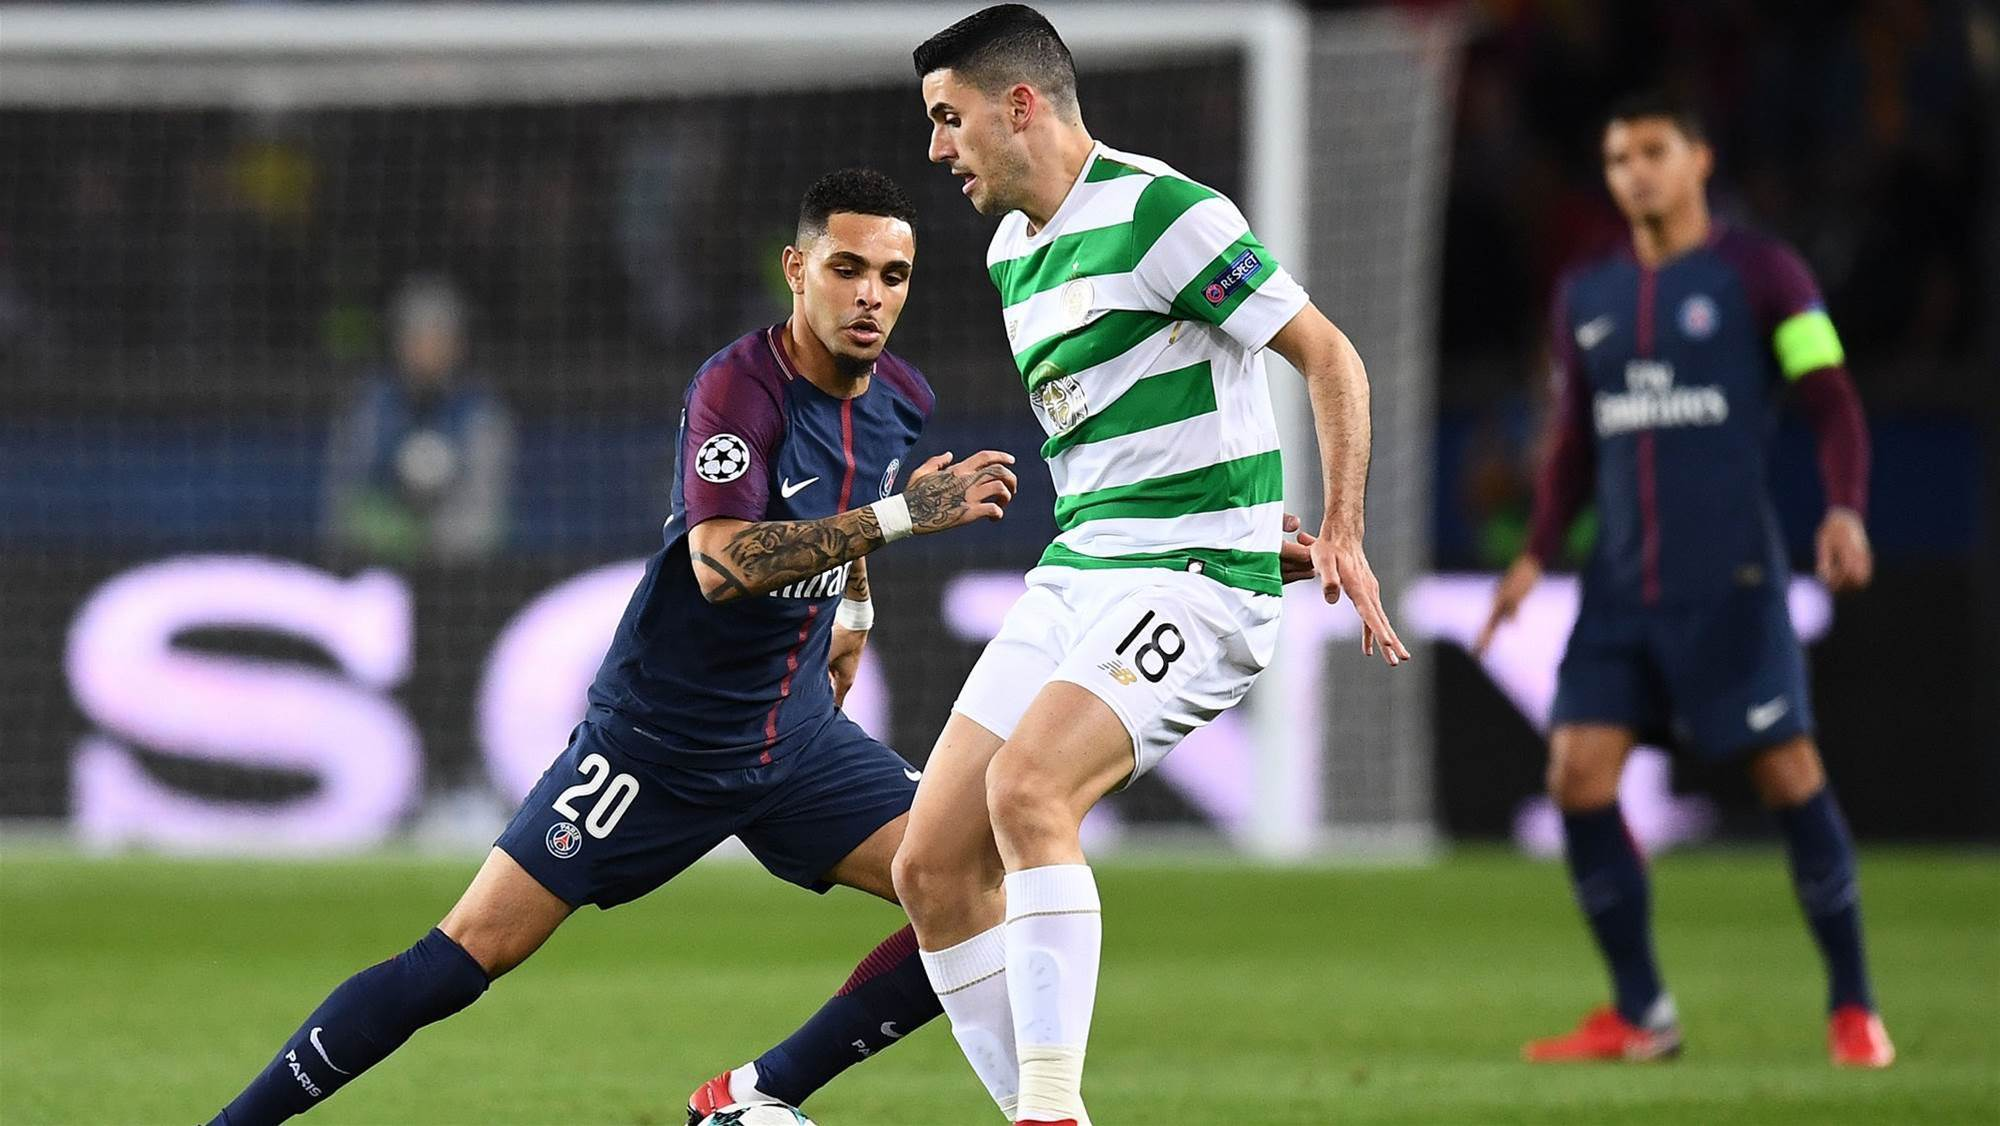 Rogic 'swamped' in PSG rout